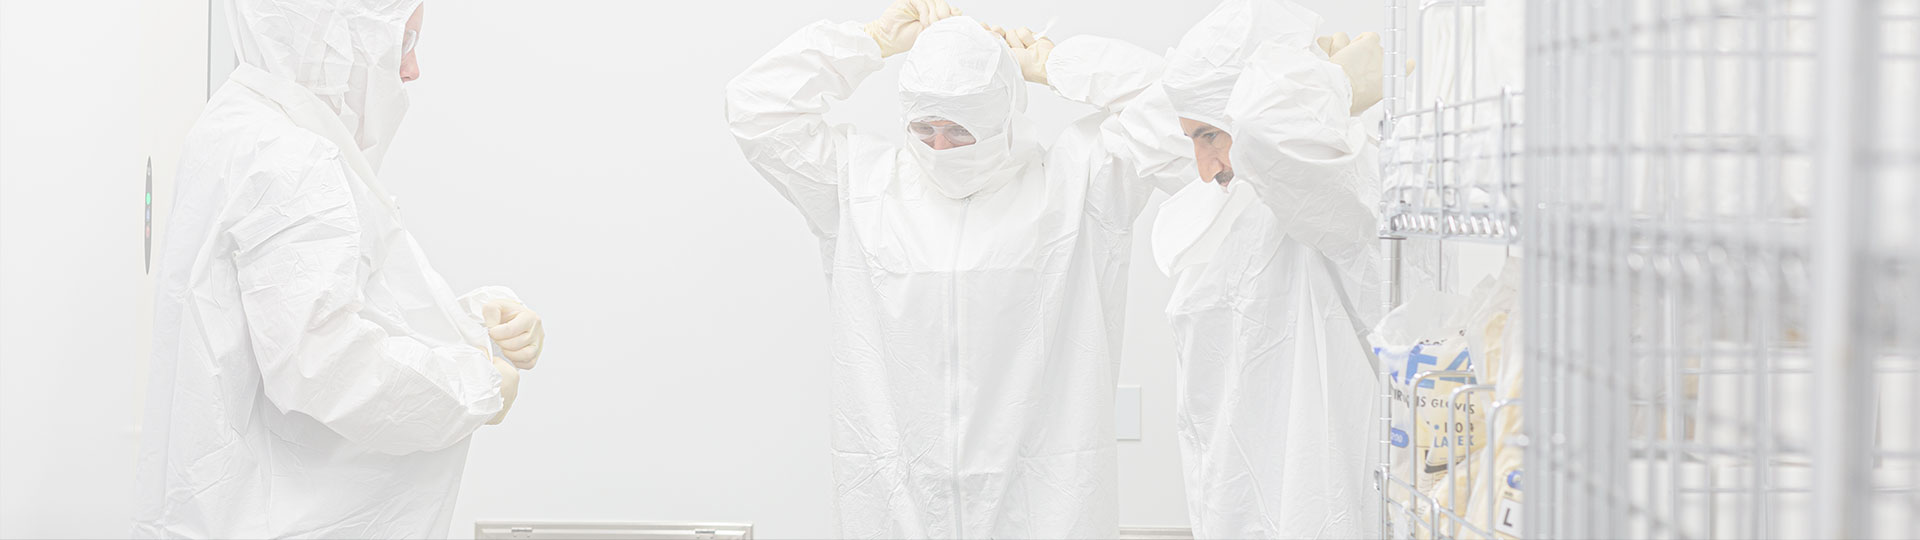 scientists in white lab Coats